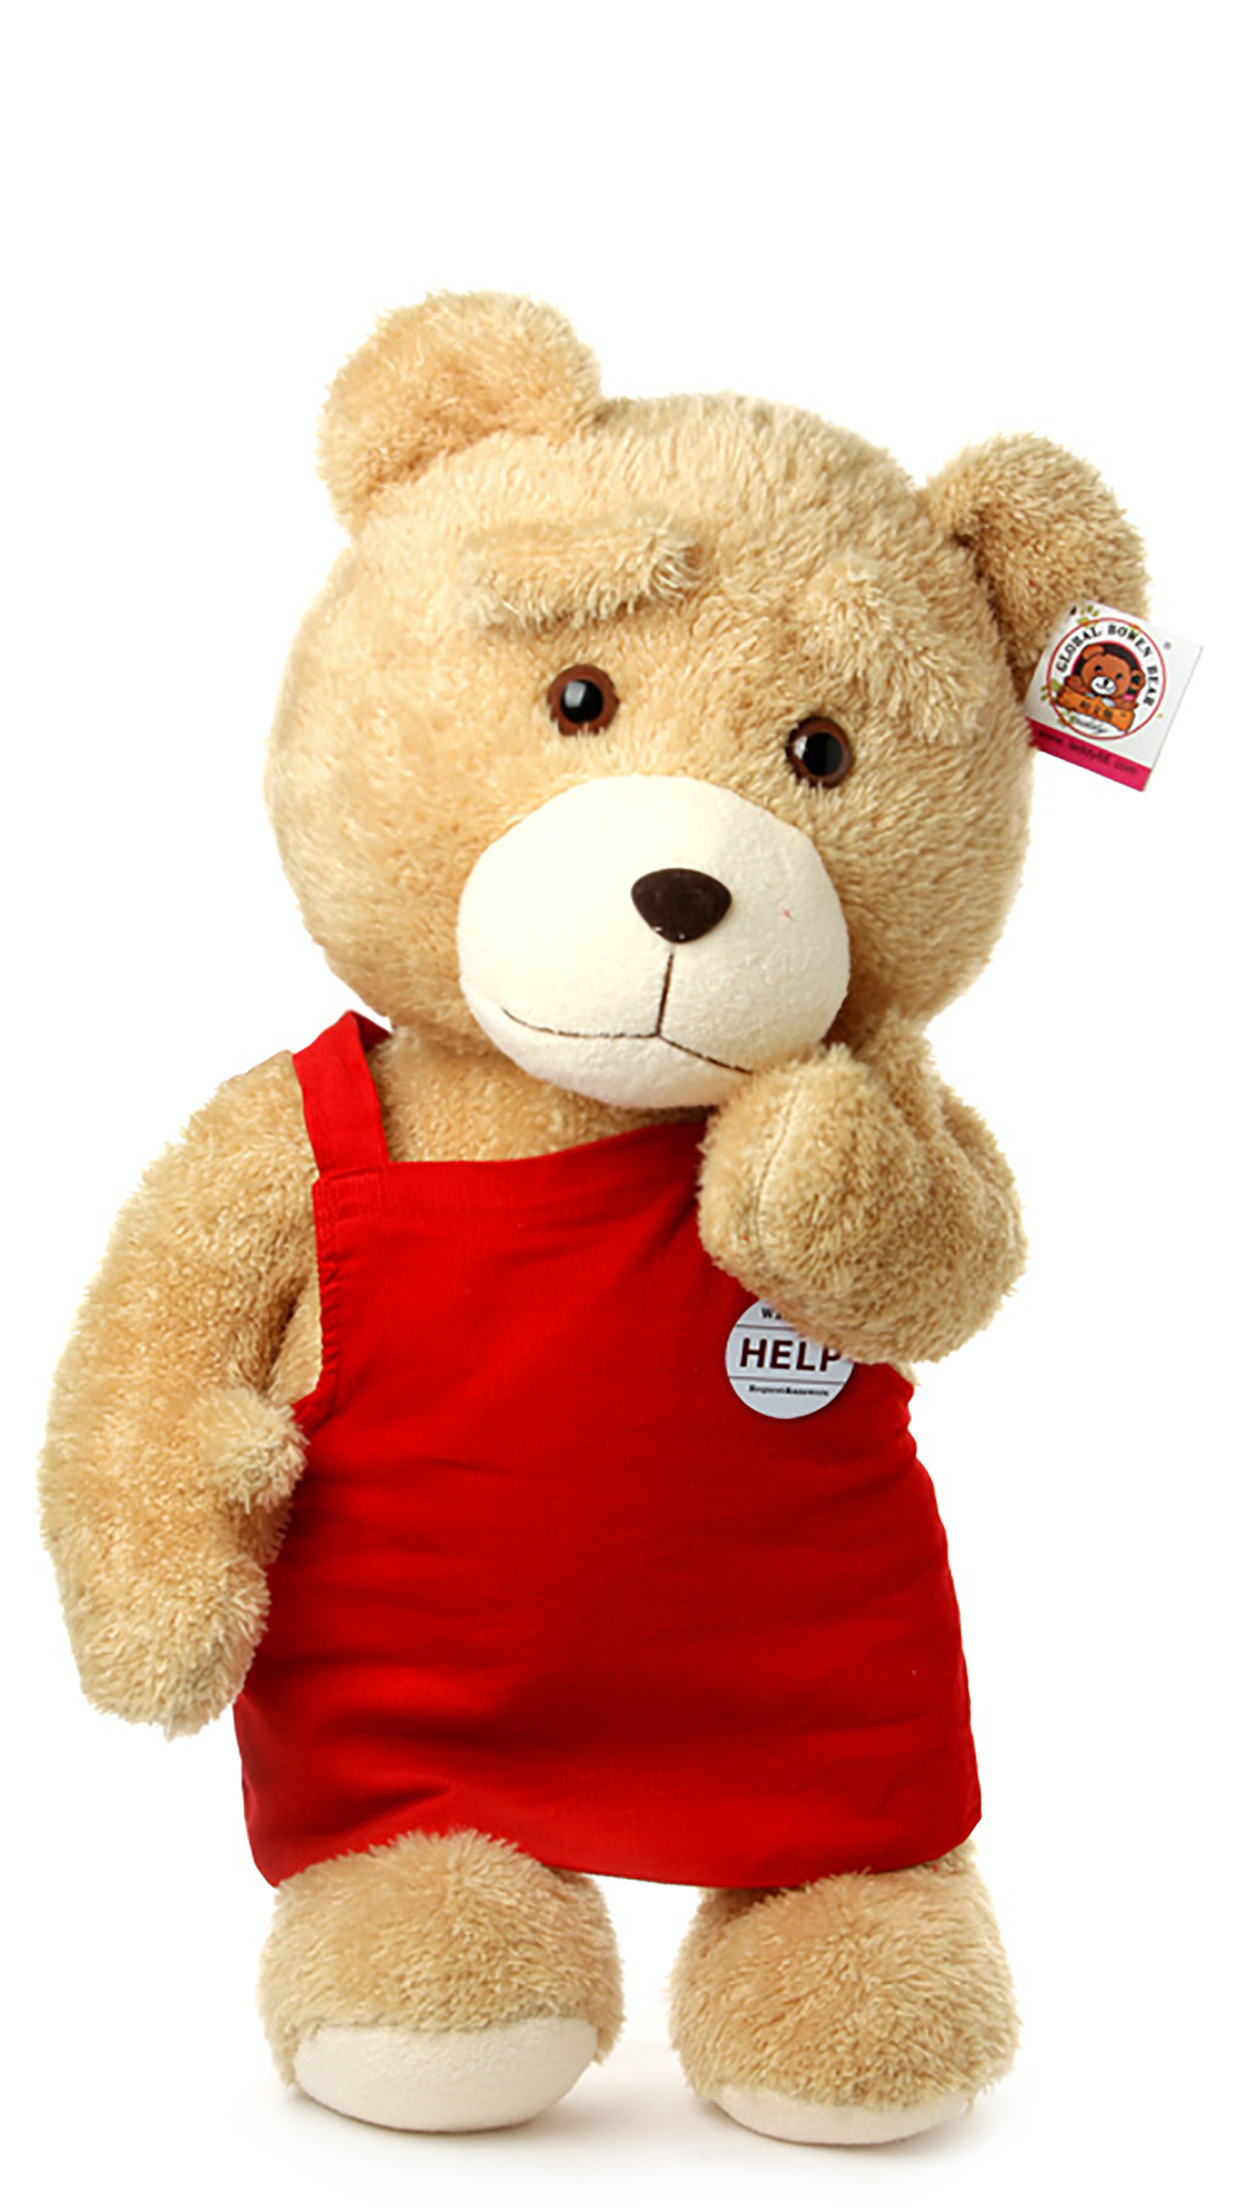 Teddy Bear Sad Wallpaper For Iphone 11 Pro Max X 8 7 6 Free Download On 3wallpapers